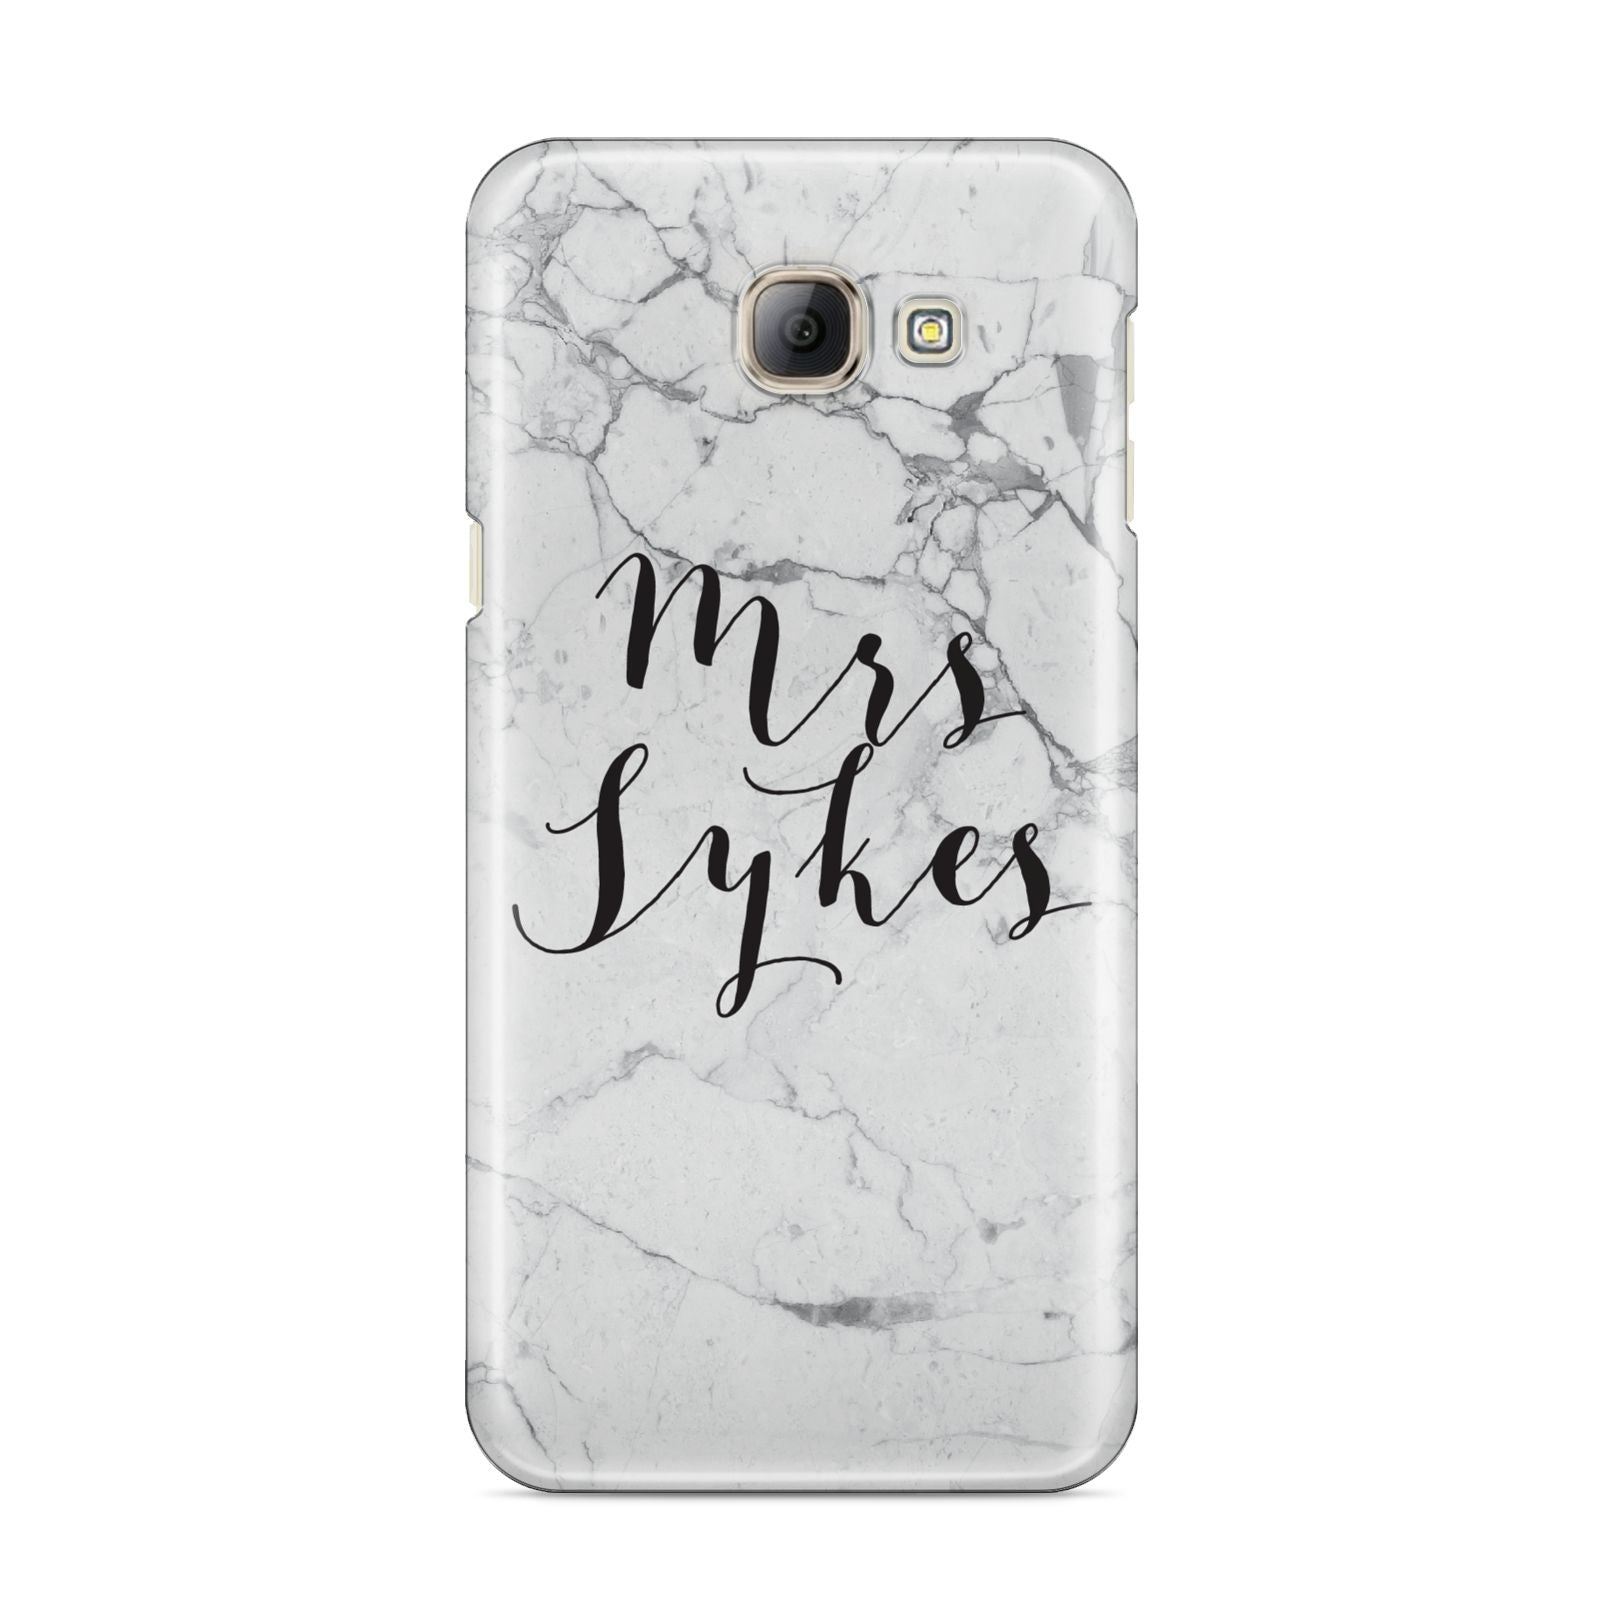 Surname Personalised Marble Samsung Galaxy A8 2016 Case